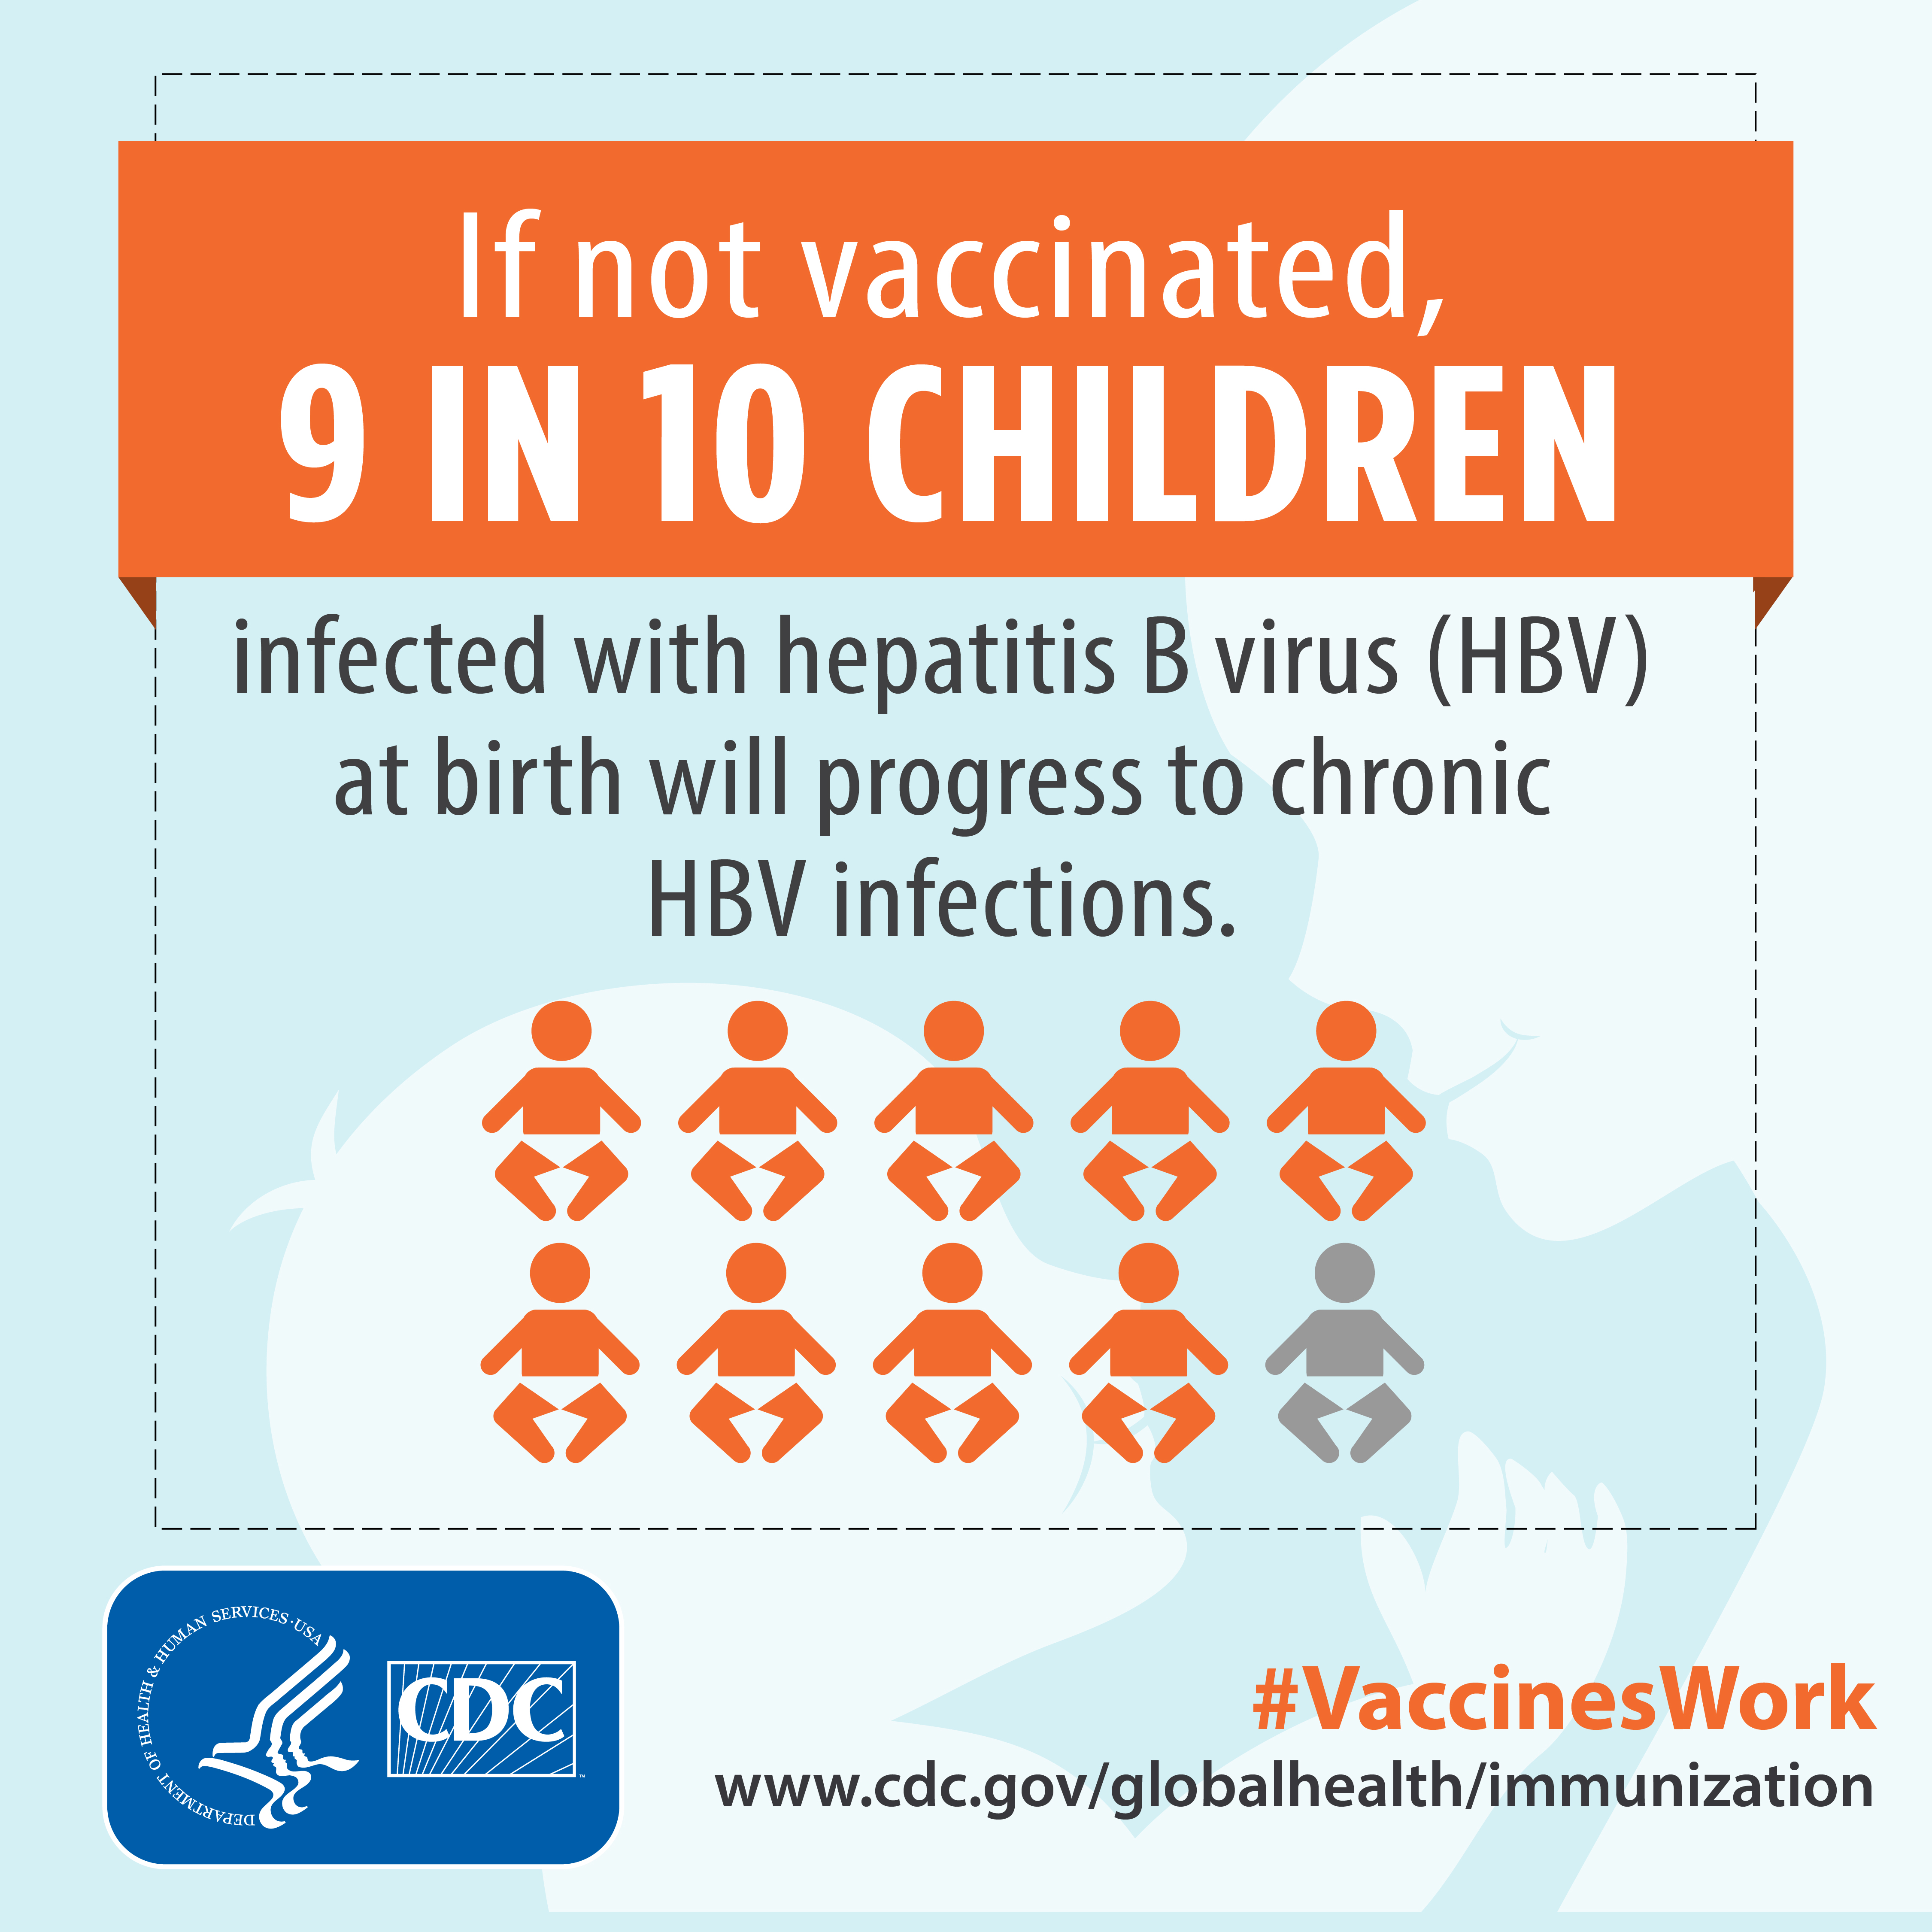 If not vaccinated, 9 in10 children infected with hepatitis B virus (HBV) at birth will progress to chronic HBV infection